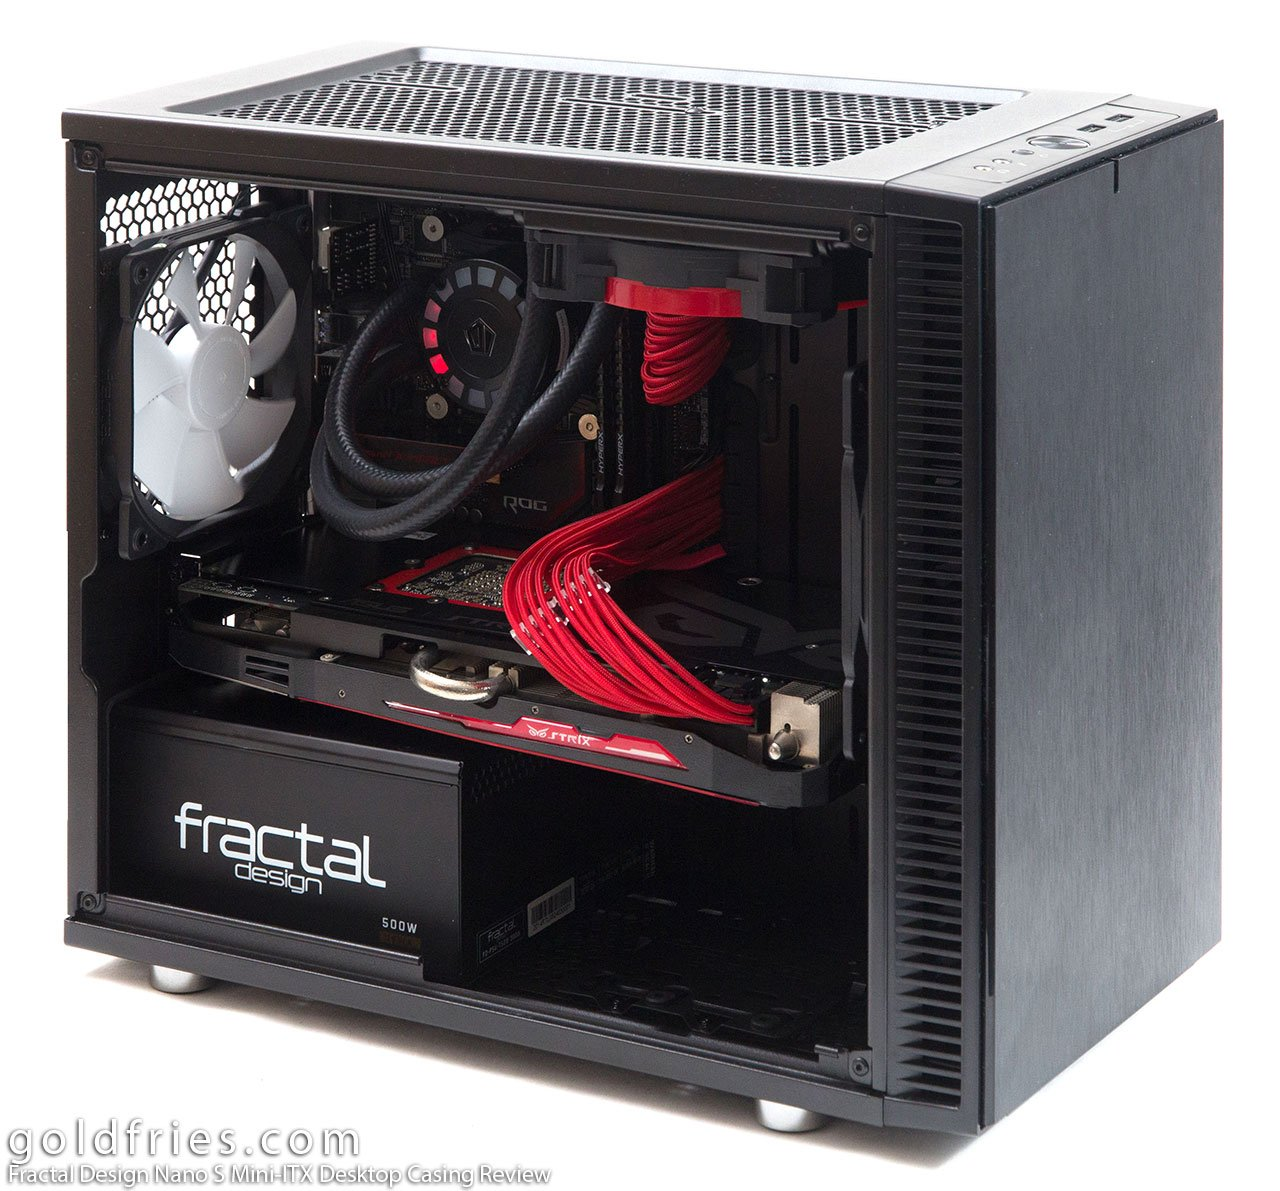 Fractal Design Nano S Mini-ITX Desktop Casing Review 1